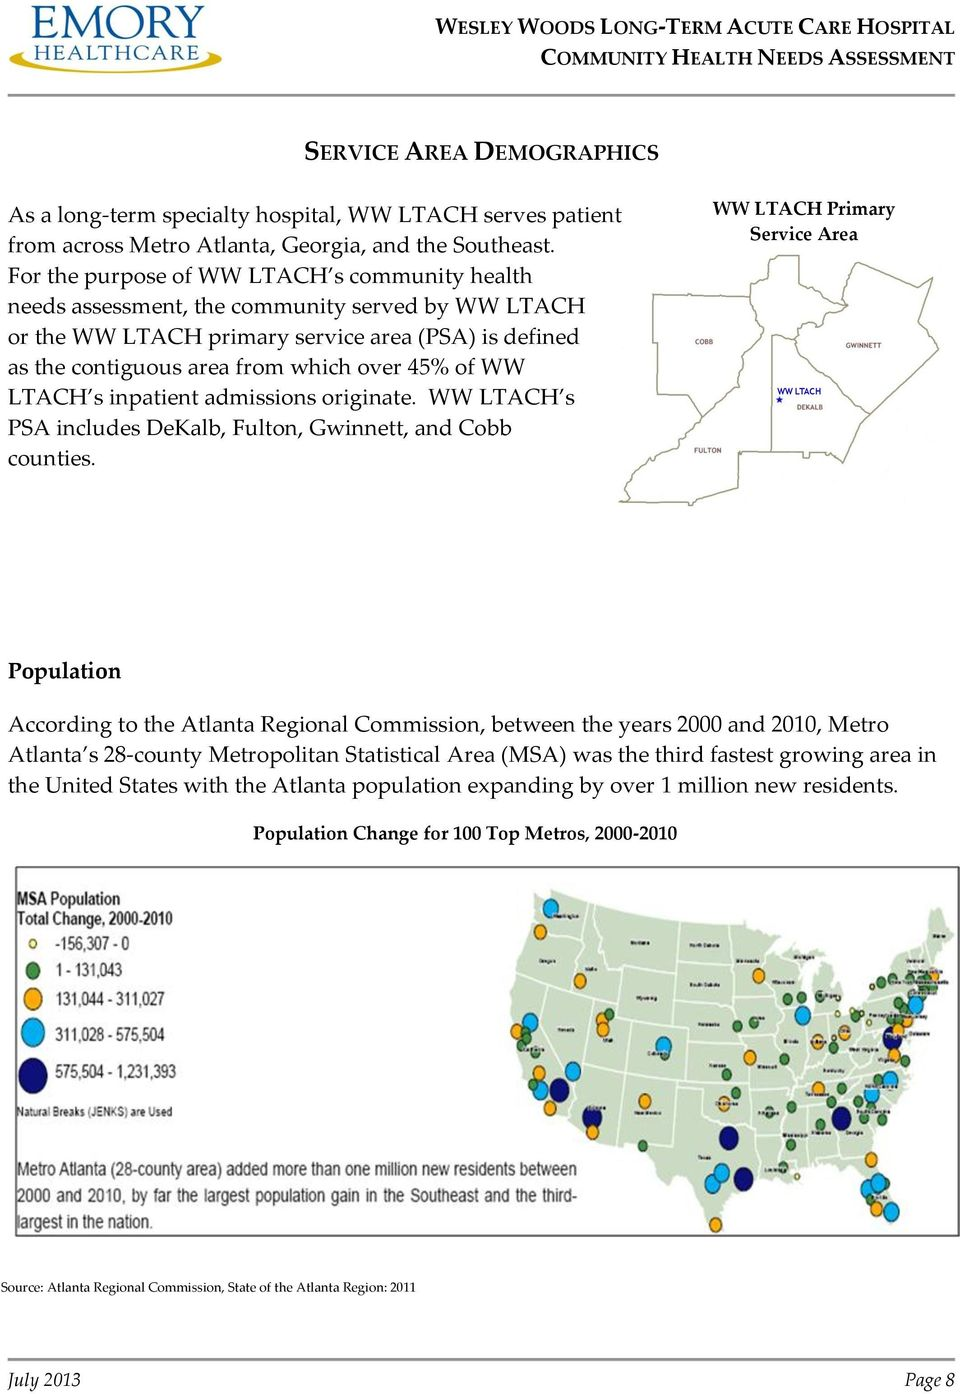 WW LTACH s inpatient admissions originate. WW LTACH s PSA includes DeKalb, Fulton, Gwinnett, and Cobb counties.